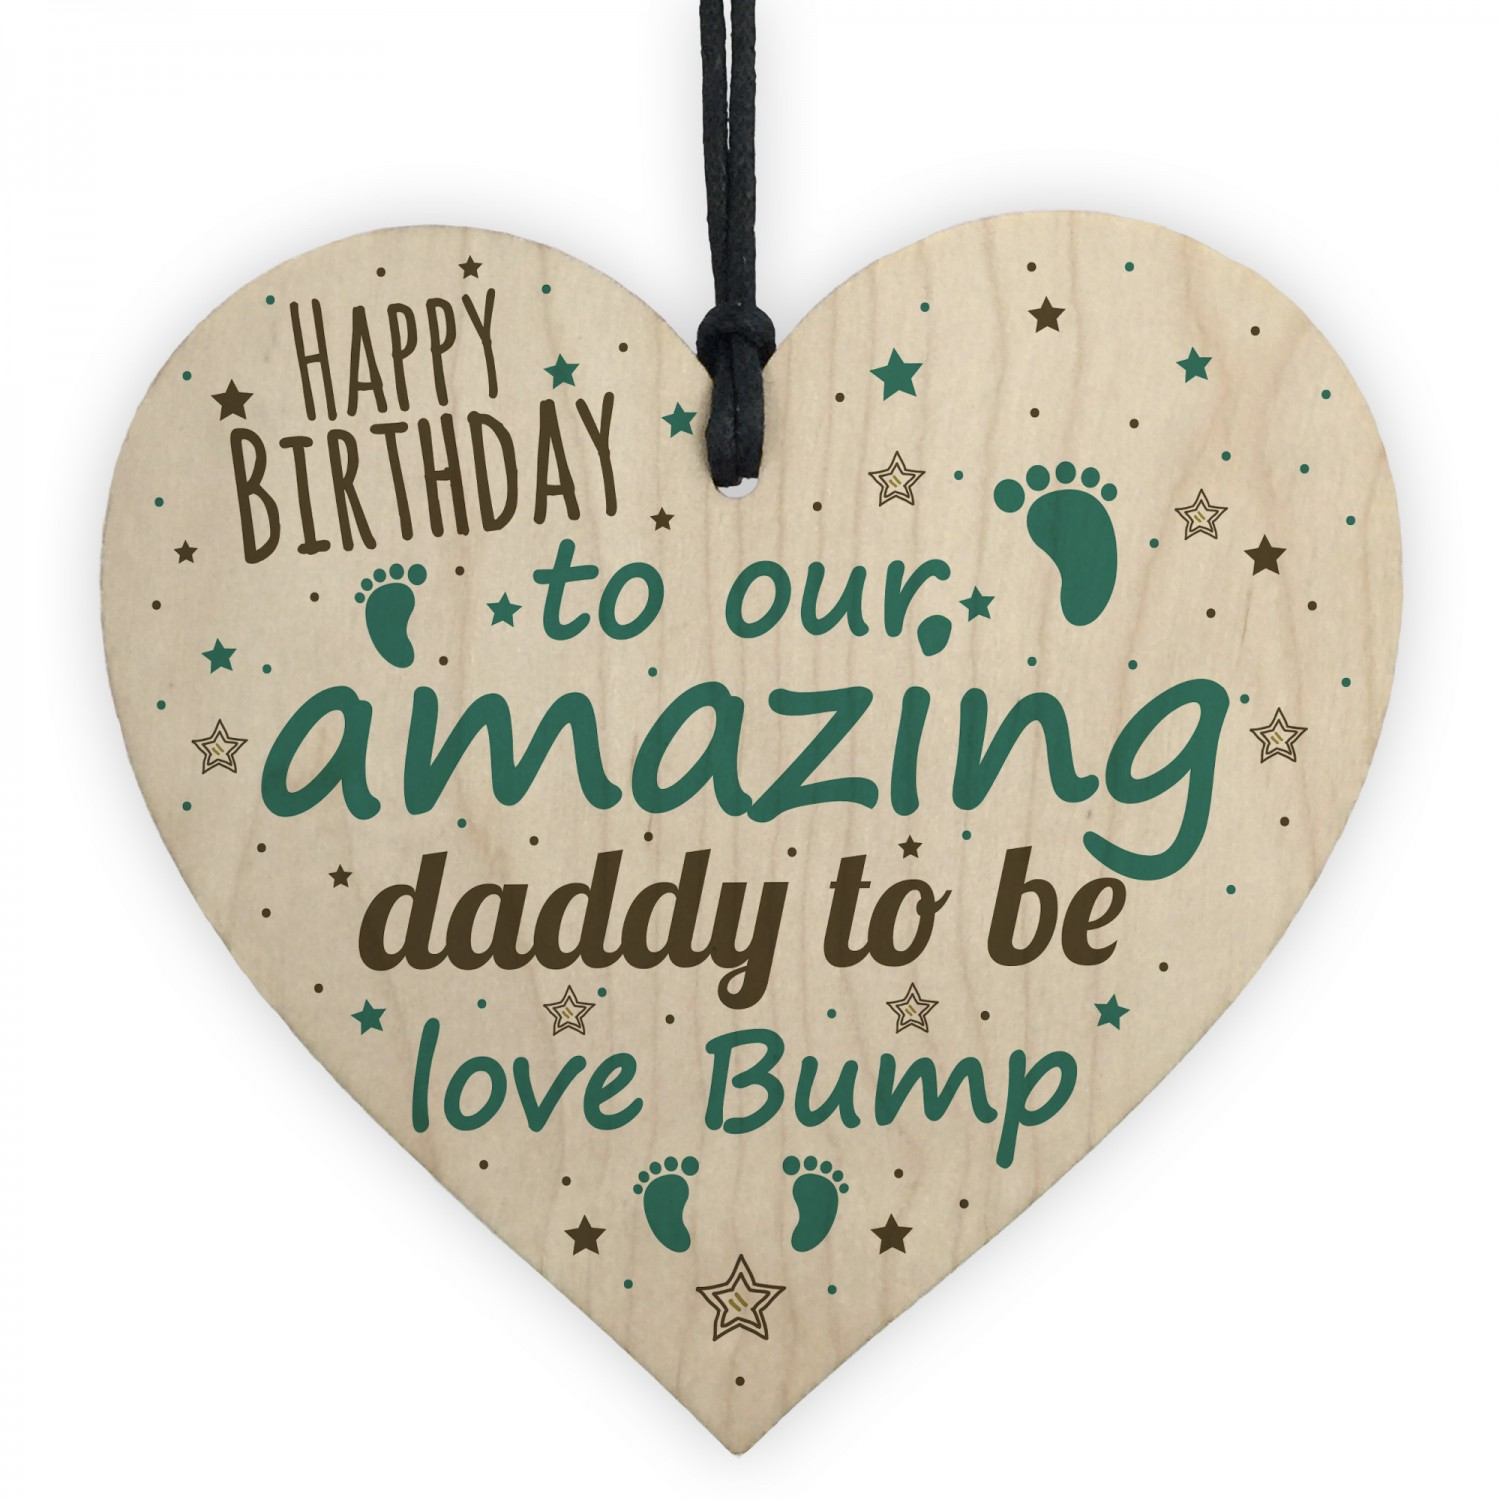 Happy Birthday Daddy To Be From Bump Wood Heart Dad Father Gift